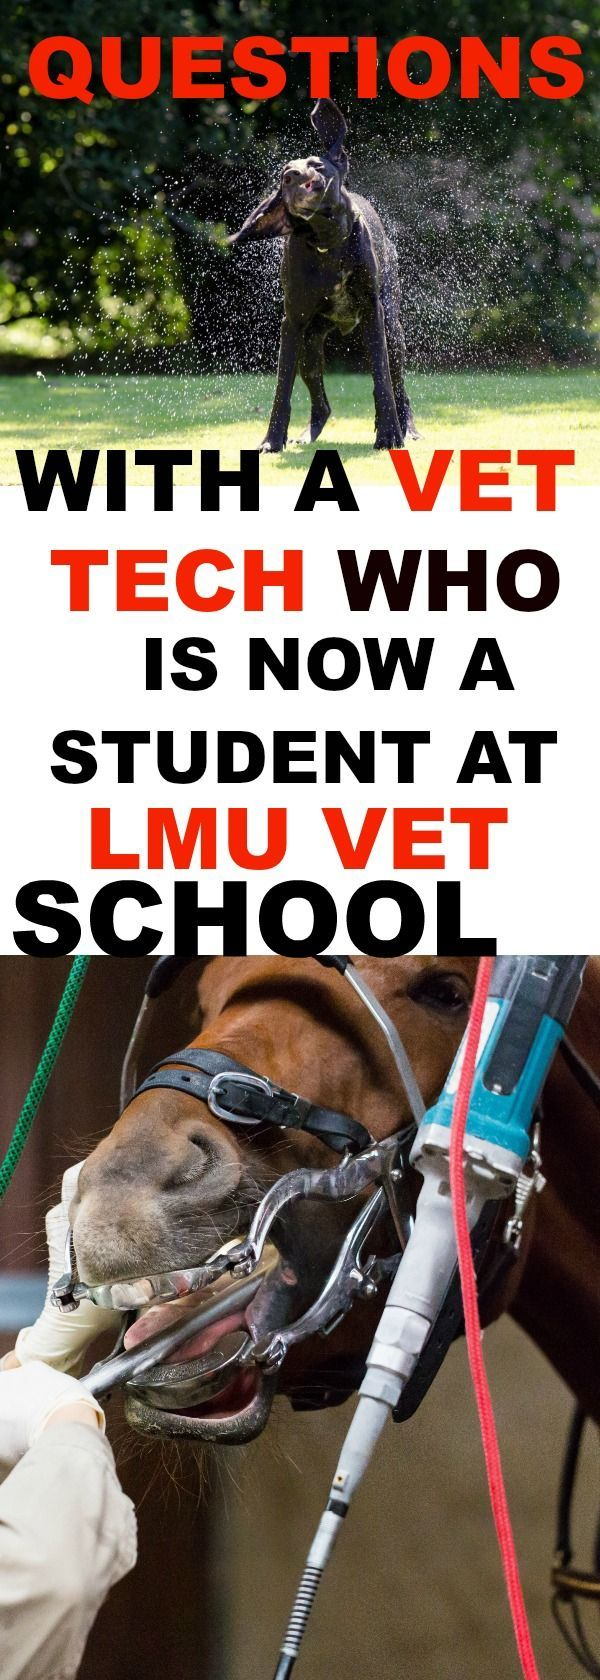 Questions with Chris, a veterinary medical student at LMU, who started out as a licensed veterinary technician. He tells us how he got into LMU after applying to 2 cycles and 14 veterinary schools.